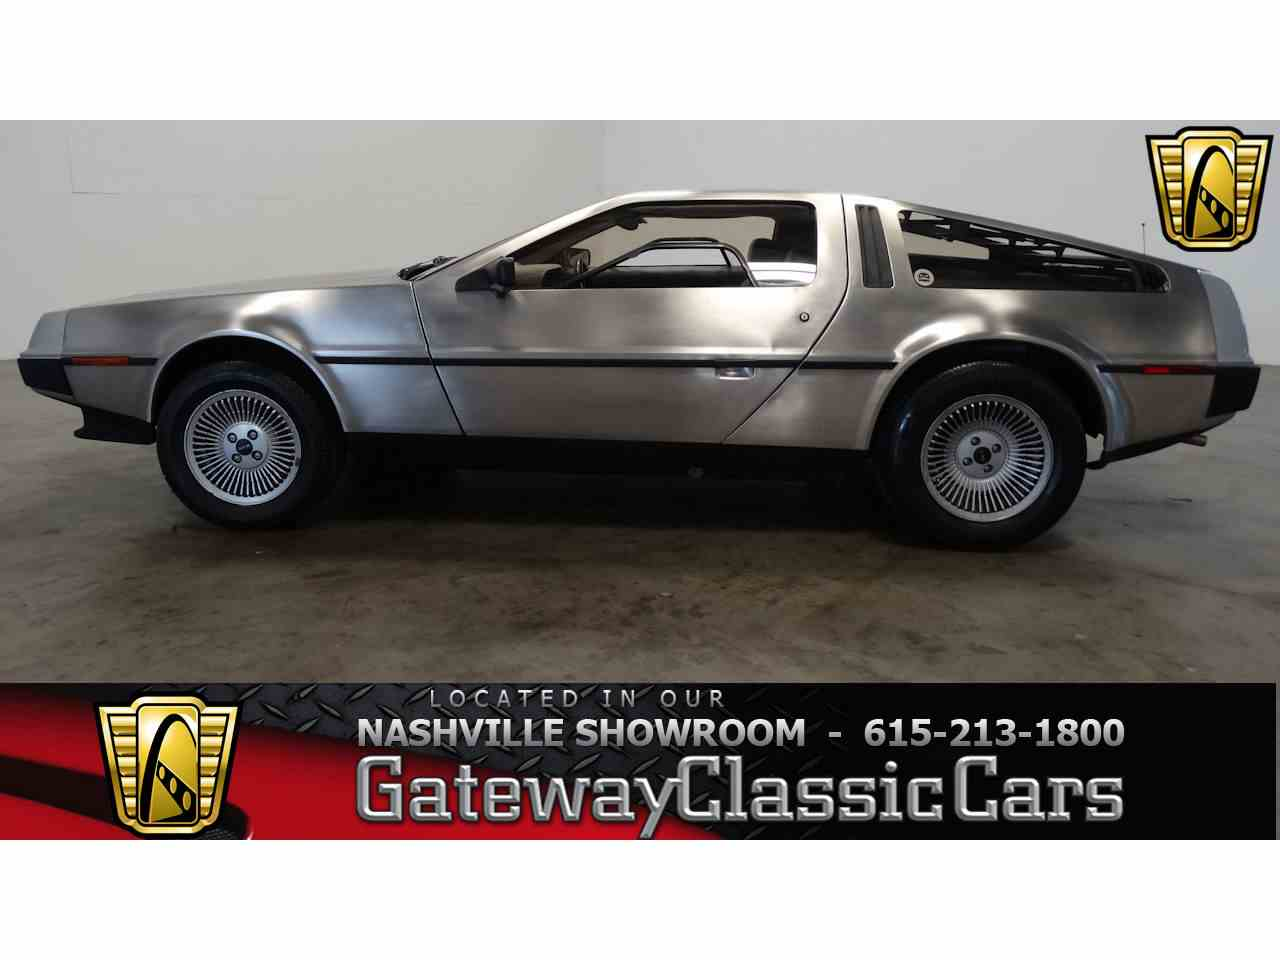 Large Picture of 1981 DeLorean DMC-12 located in La Vergne Tennessee Offered by Gateway Classic Cars - Nashville - M2L4